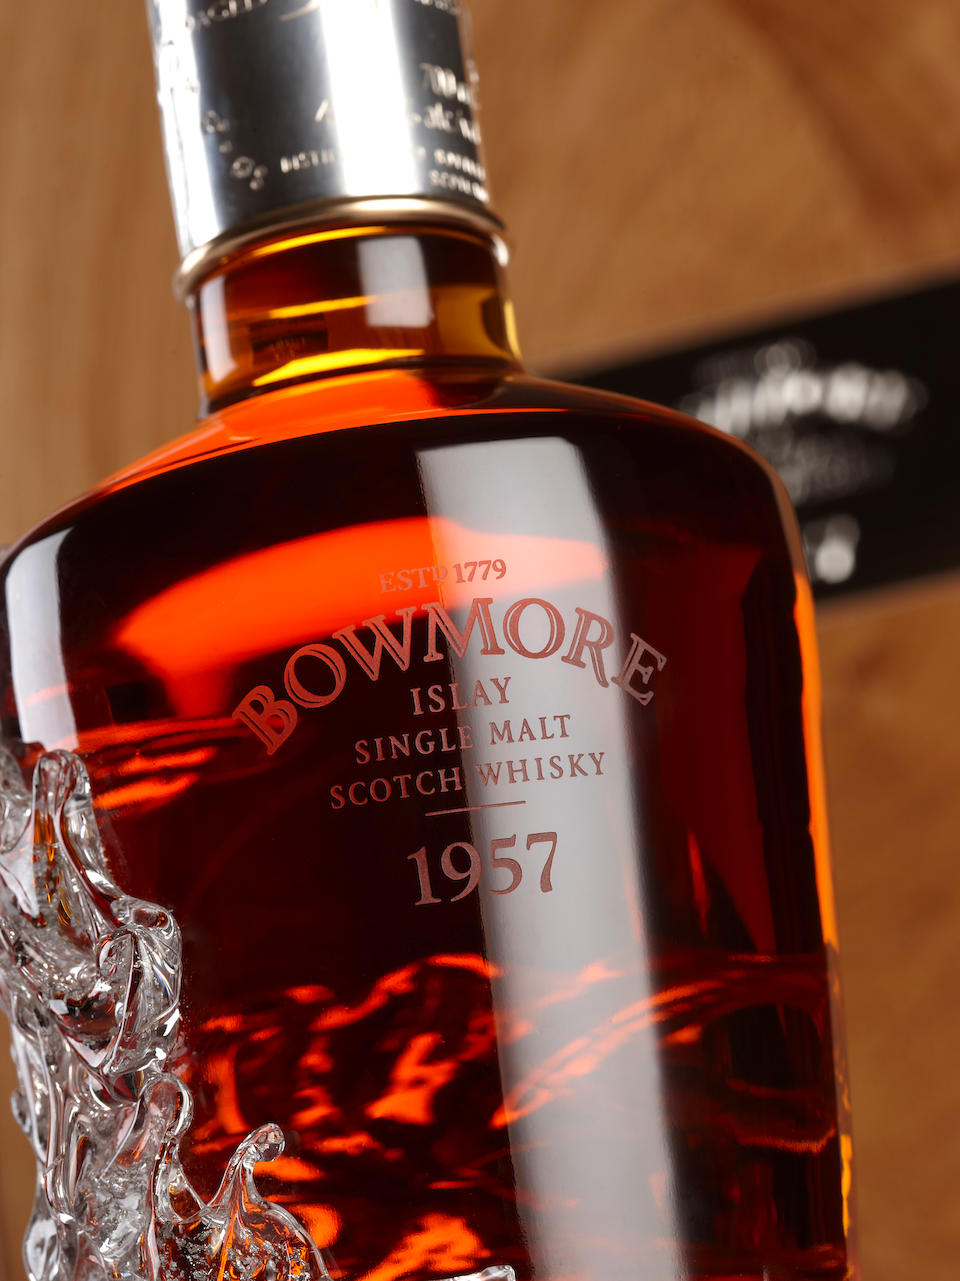 Bowmore-54 year old-1957